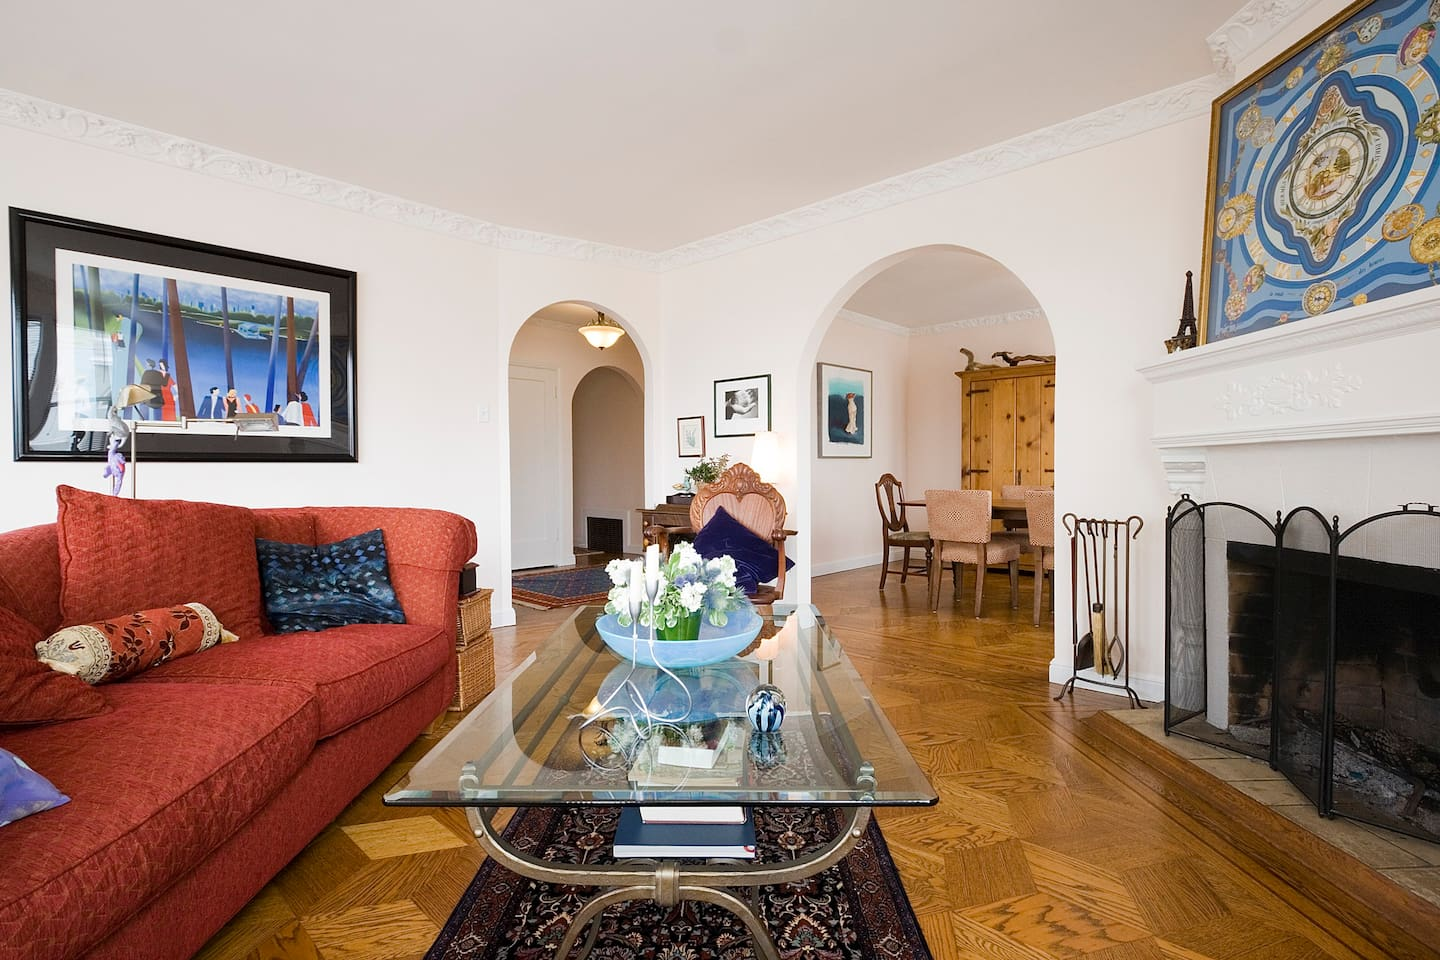 Le Salon:  relax in the  living room, with a view of the dining room and foyer